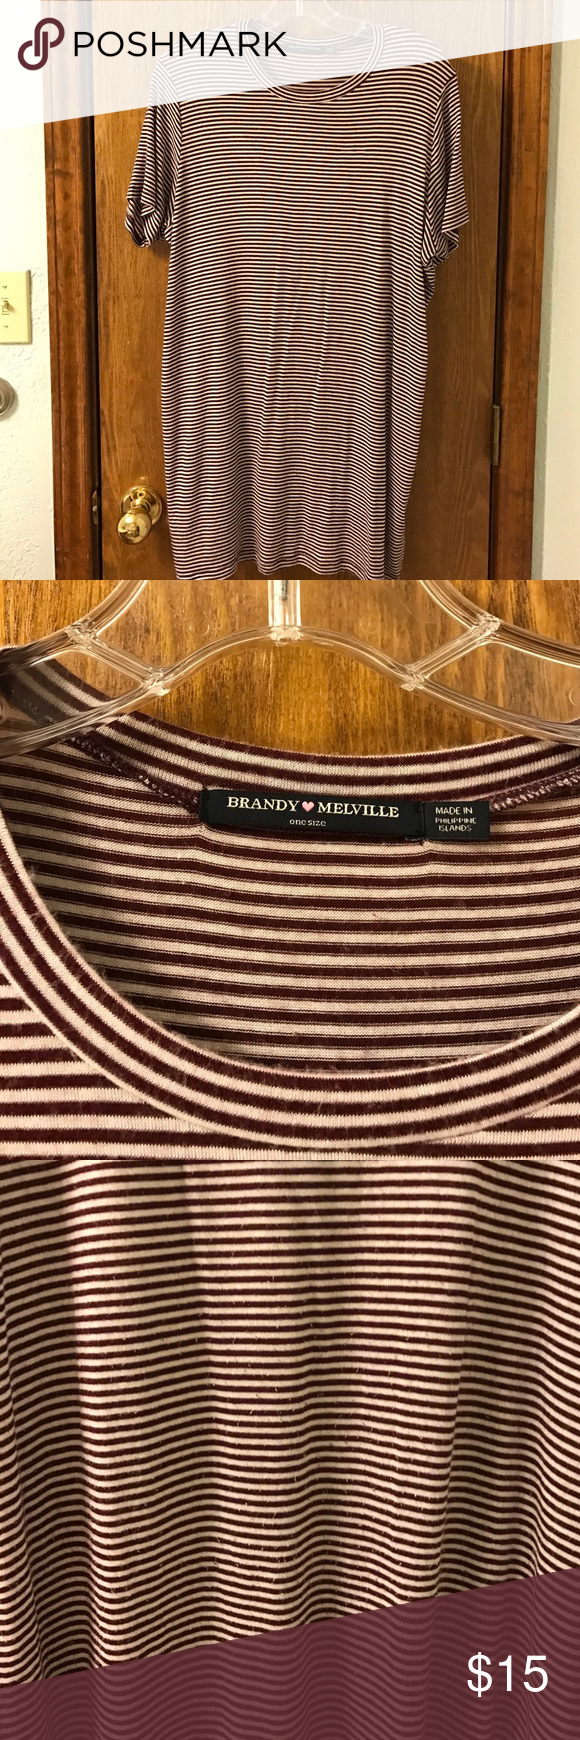 Brandy Melville T-Shirt Dress Maroon and white striped Brandy Melville T-shirt dress. Classic soft Brandy material. Gently worn condition but still adorable! (Brandy Melville is one size fits all) Brandy Melville Dresses